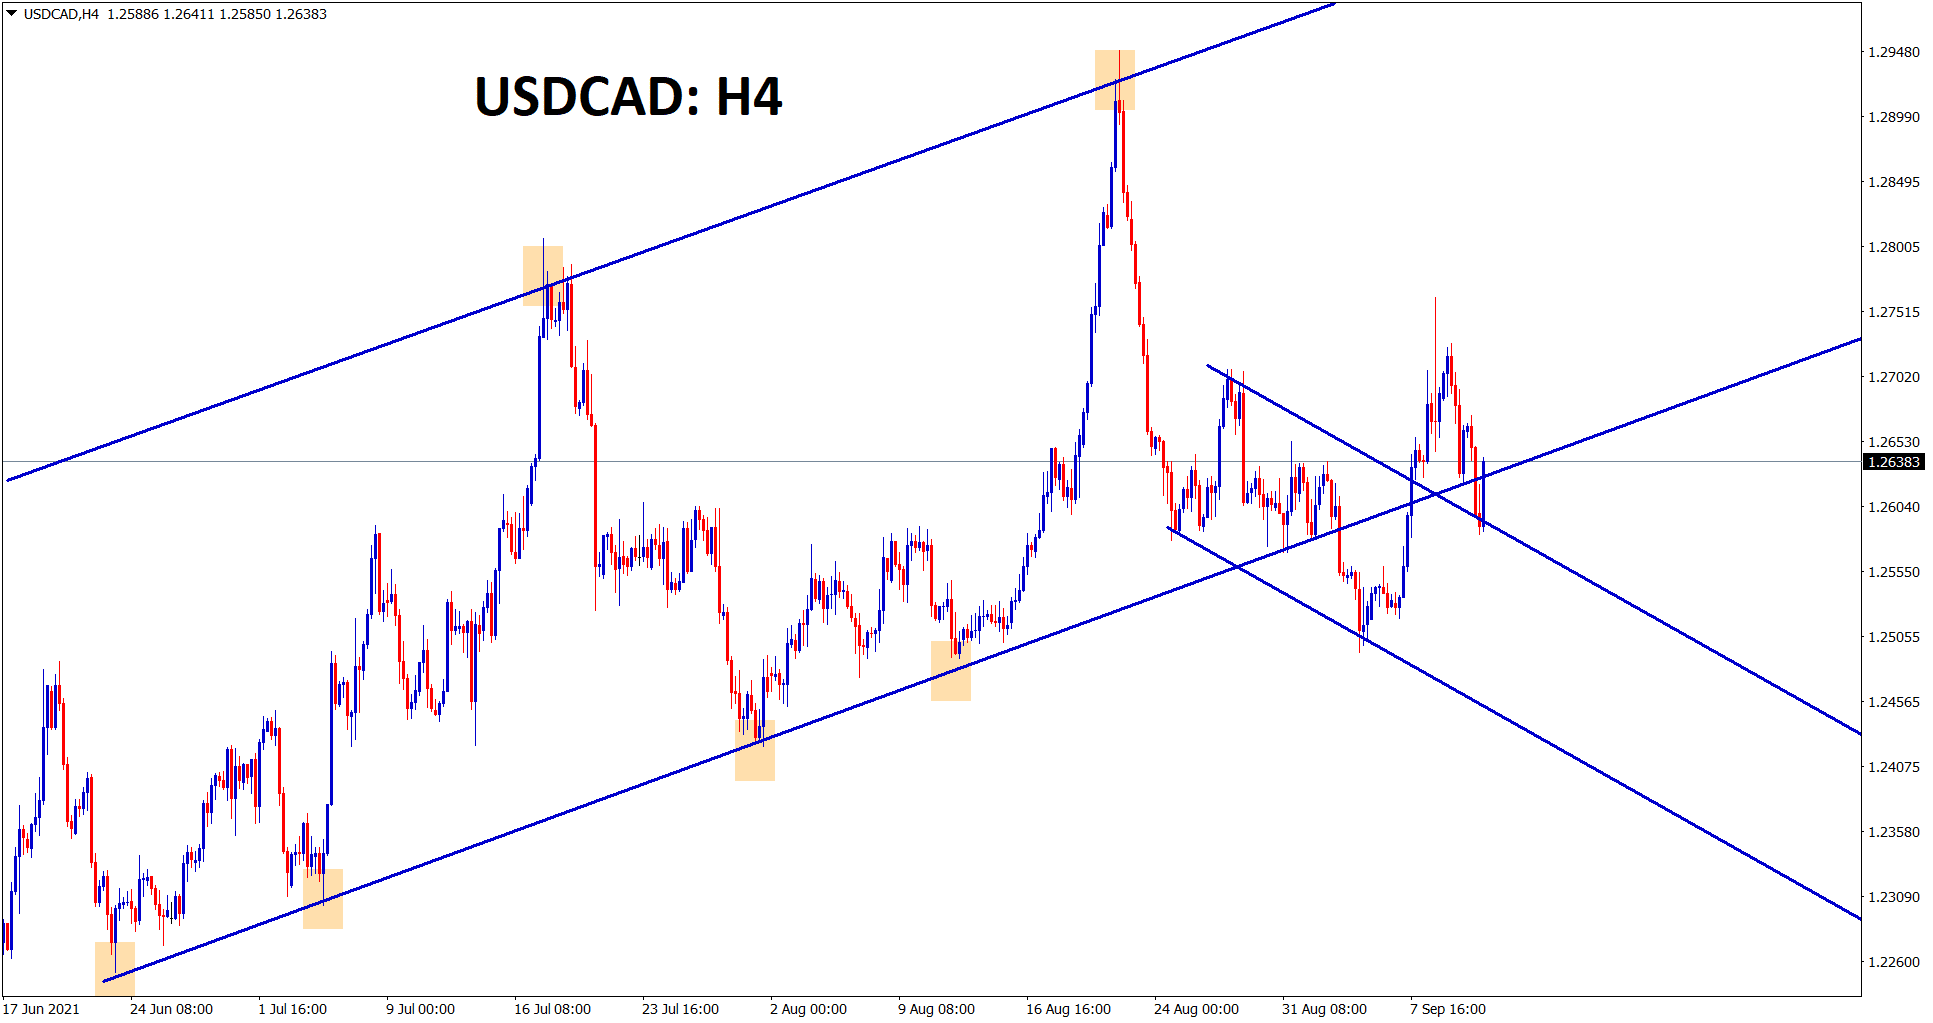 USDCAD has retested the recent broken minor descending channel and starts to rise up now